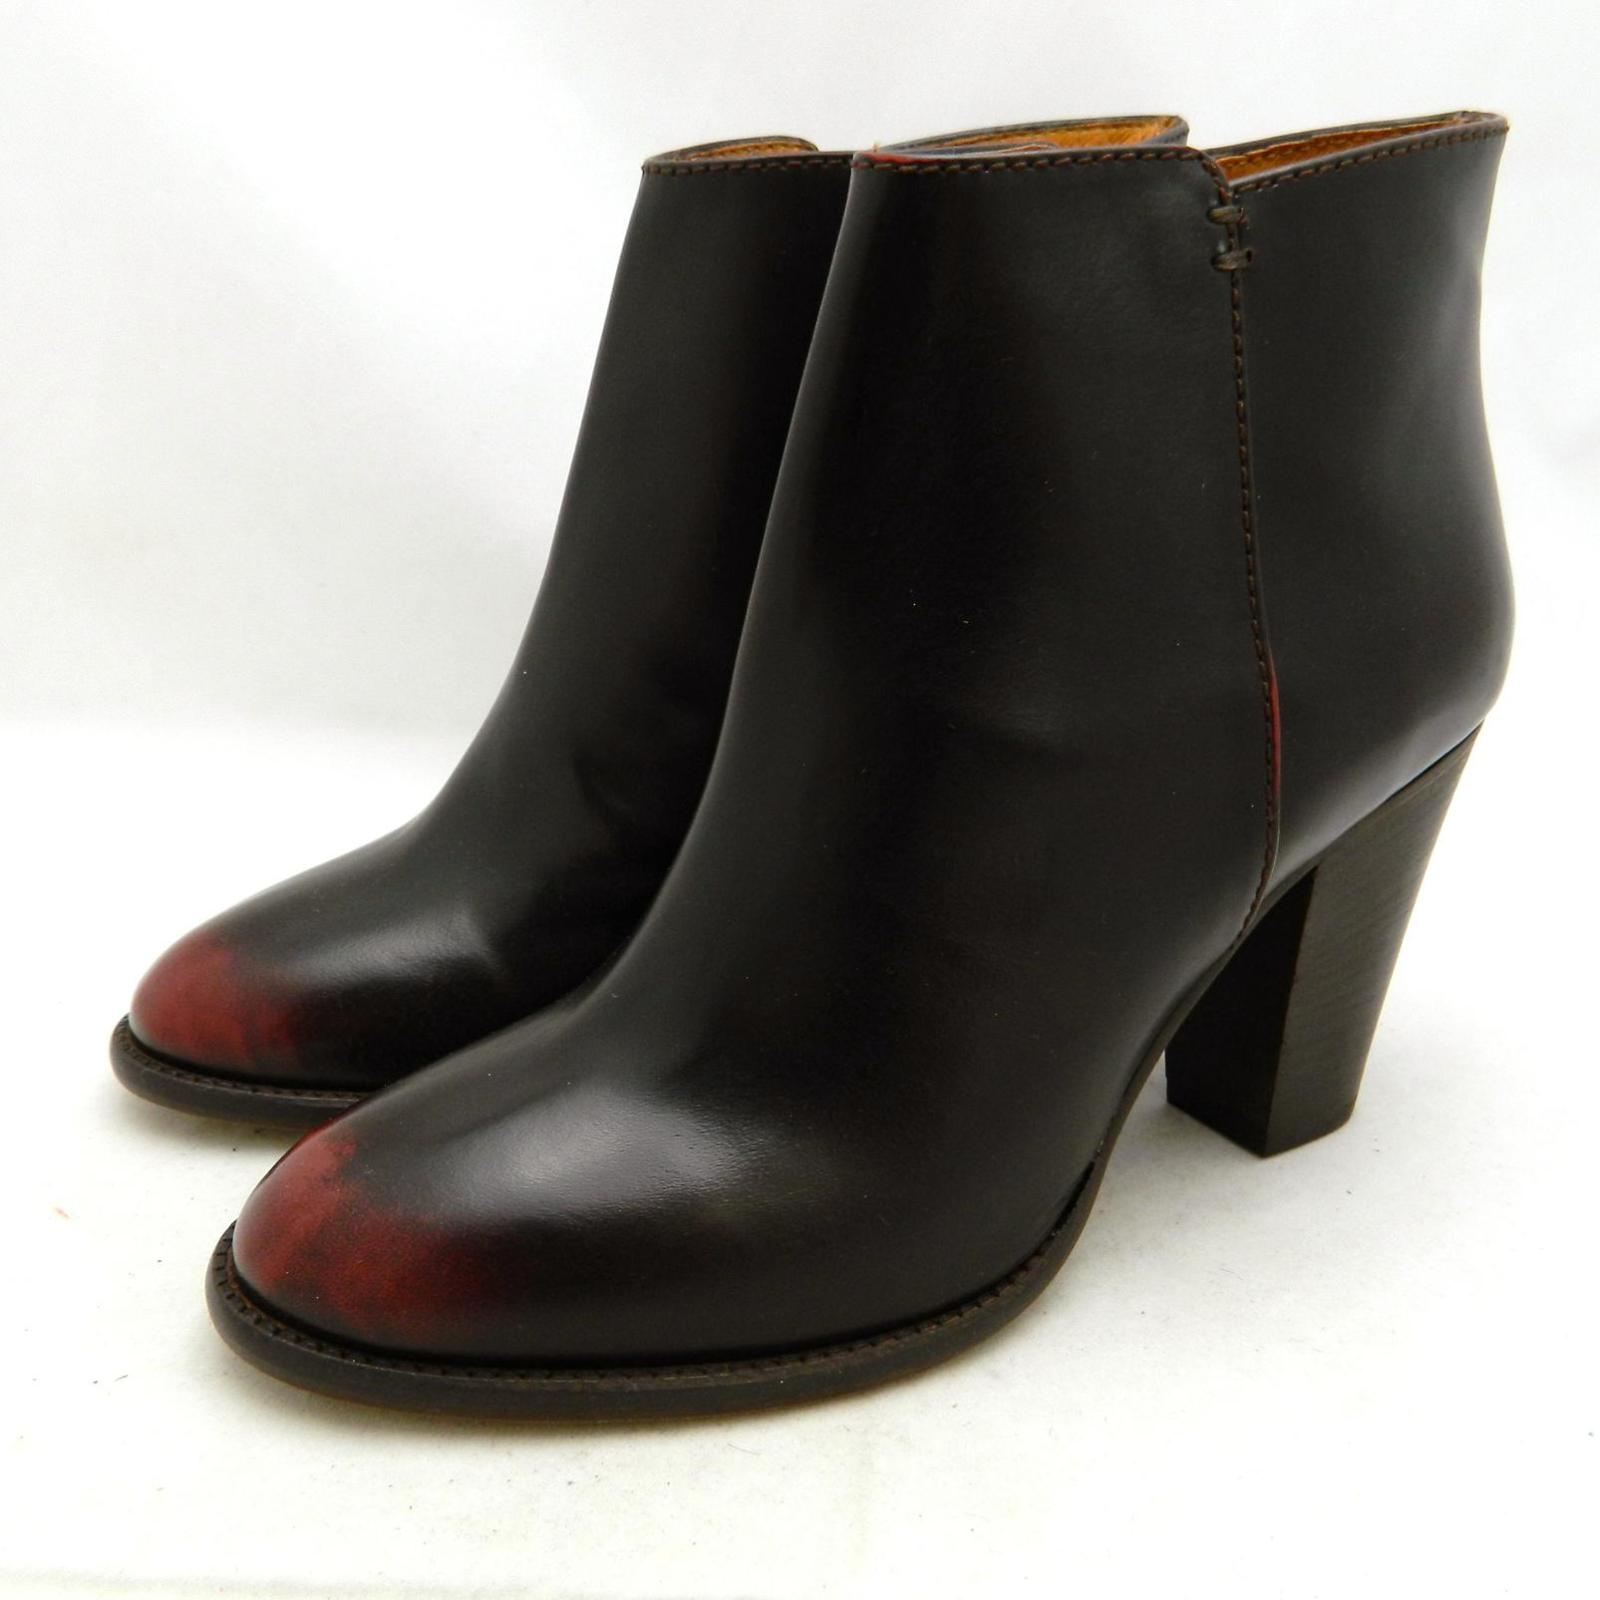 madewell 268 leather hadley boots 9 5 wine shoes ebay